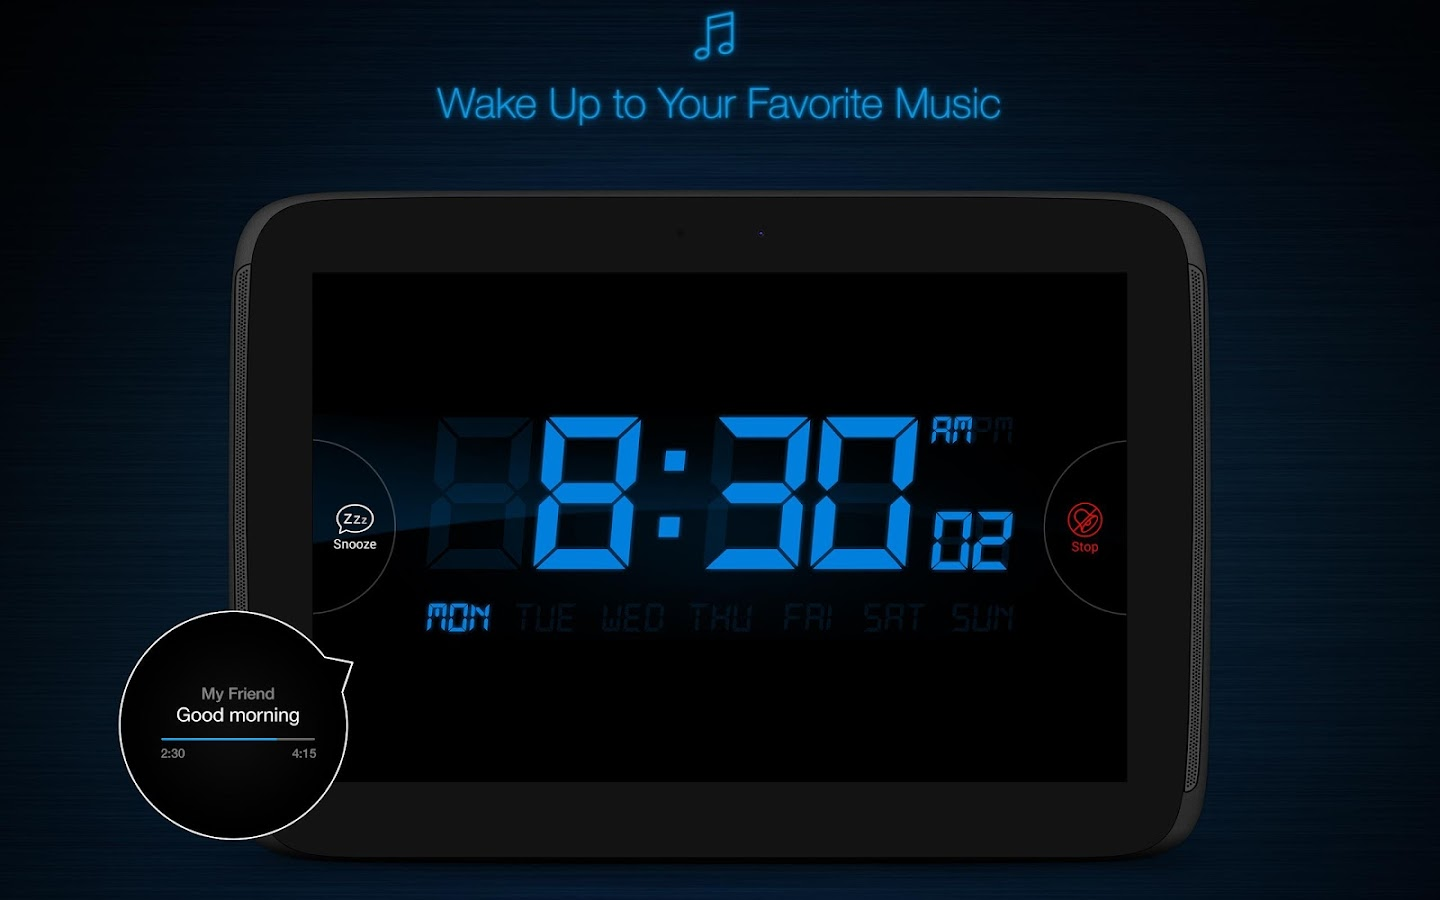 Phone Where Is The Alarm Clock On My Android Phone alarm clock for me free android apps on google play screenshot